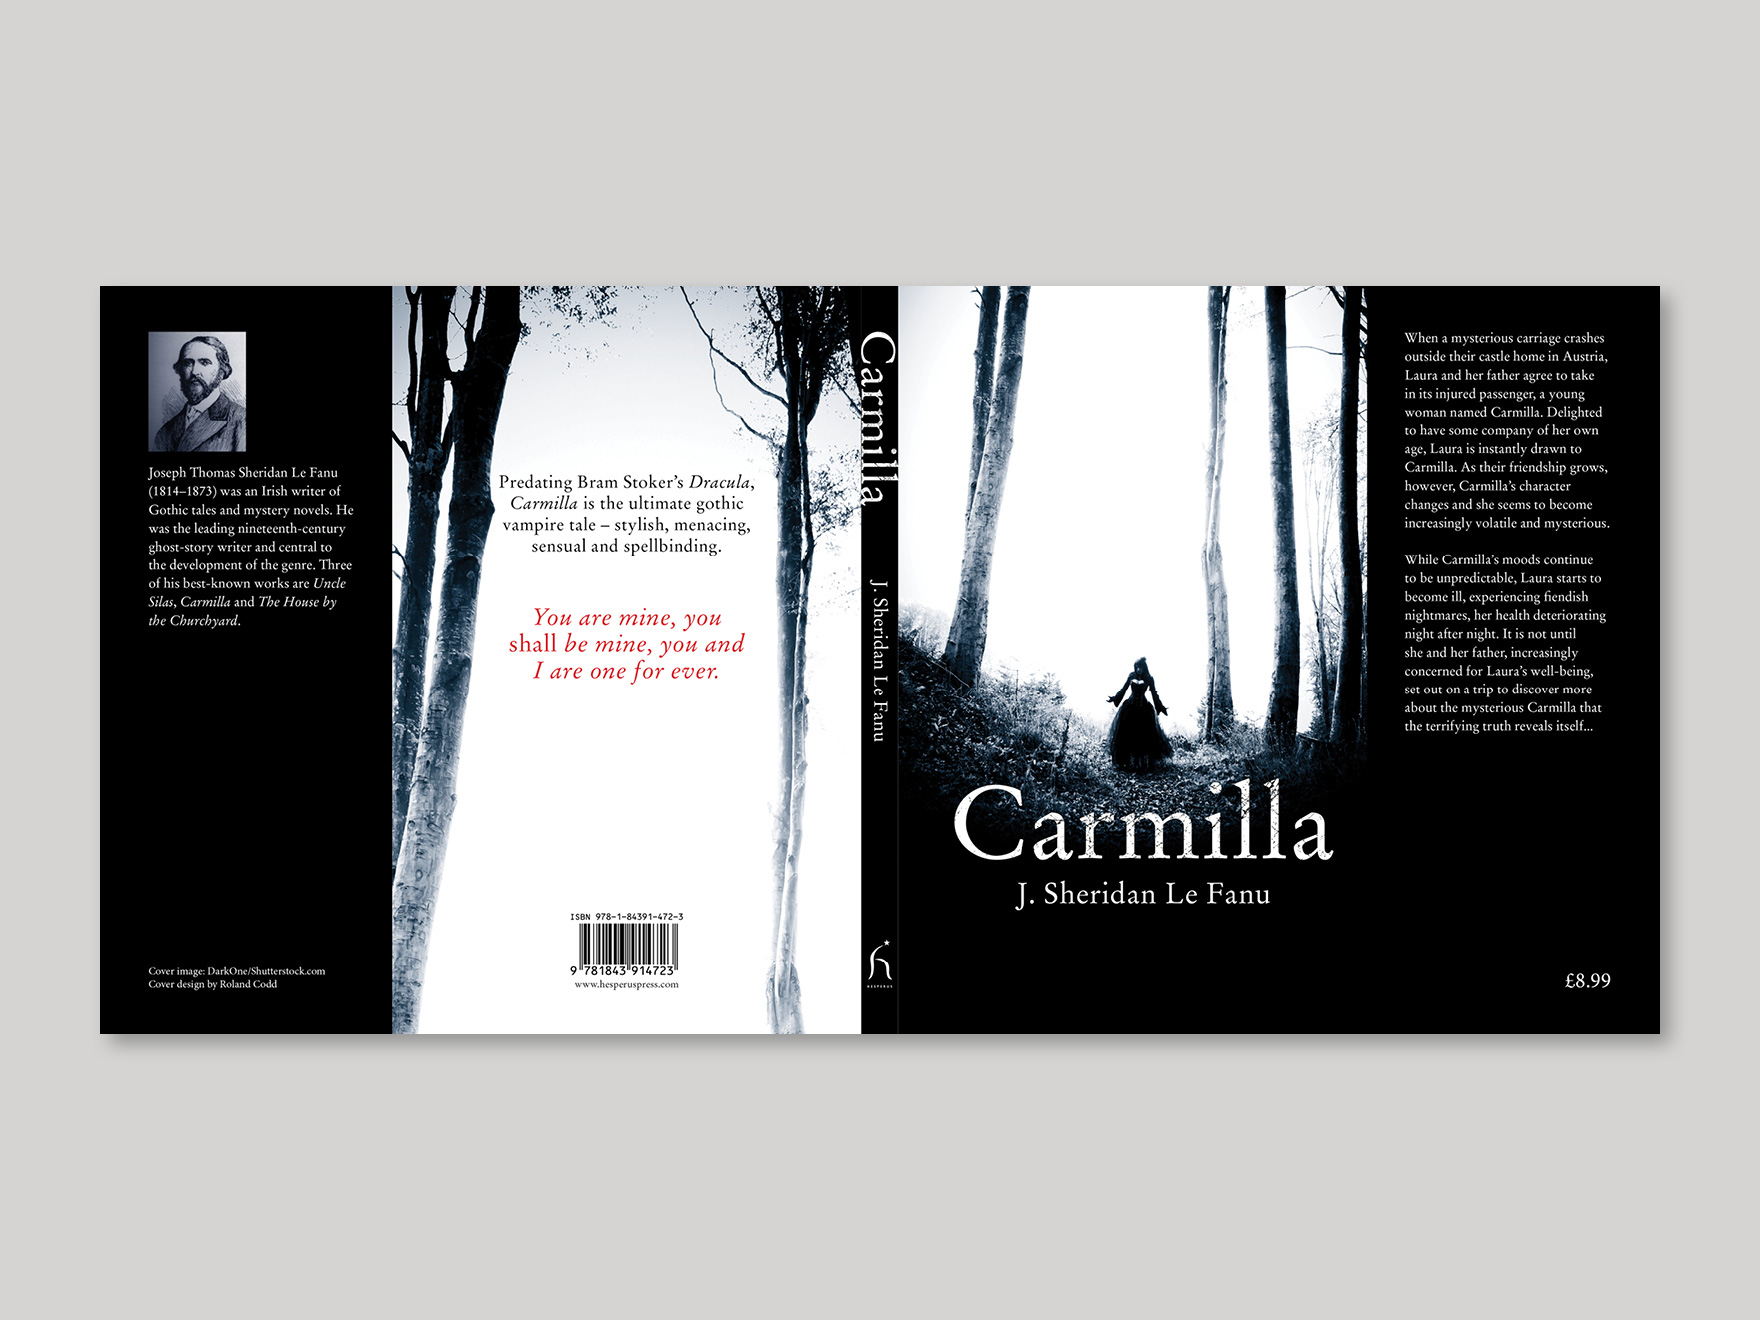 Full book cover to Carmilla, showing the front, spine, back and flaps